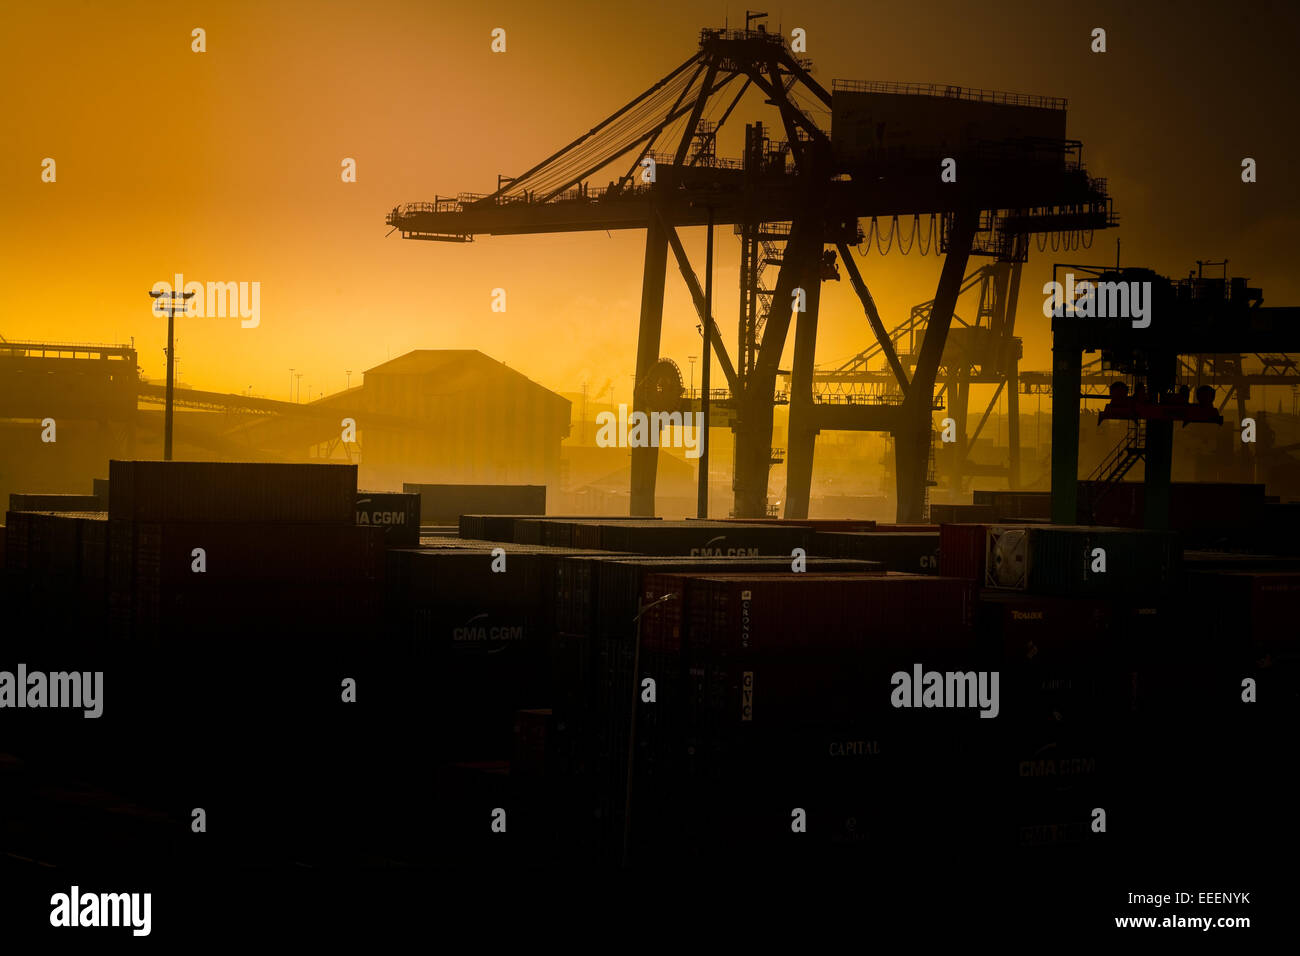 Orange tinted Casablanca dockyards. - Stock Image